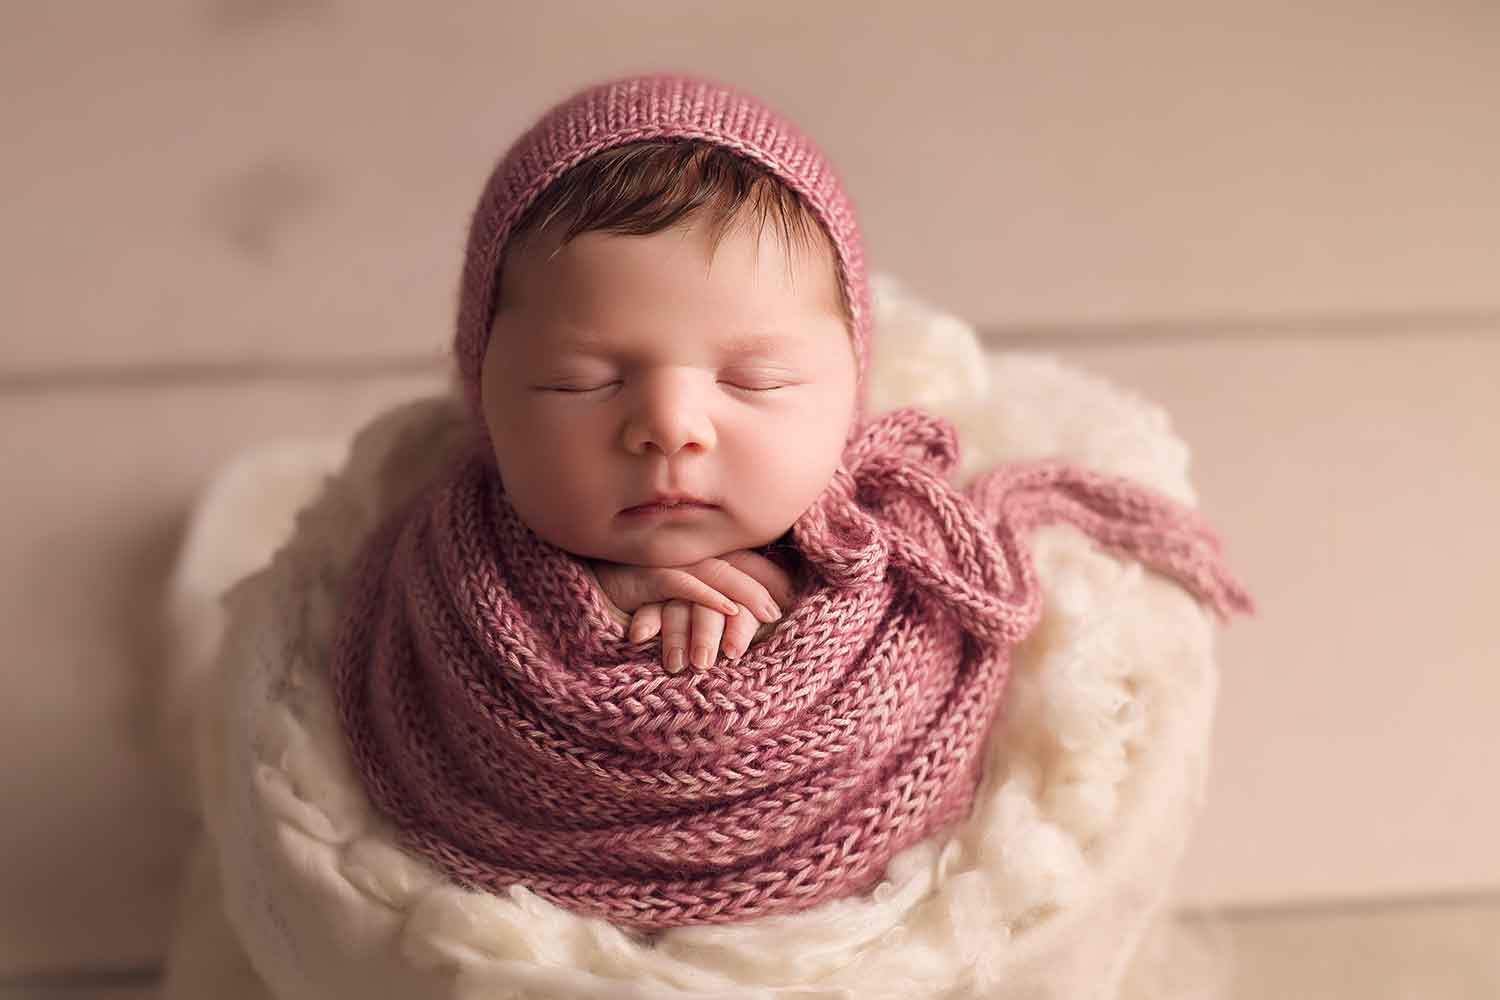 newborn girl in potato sac pose